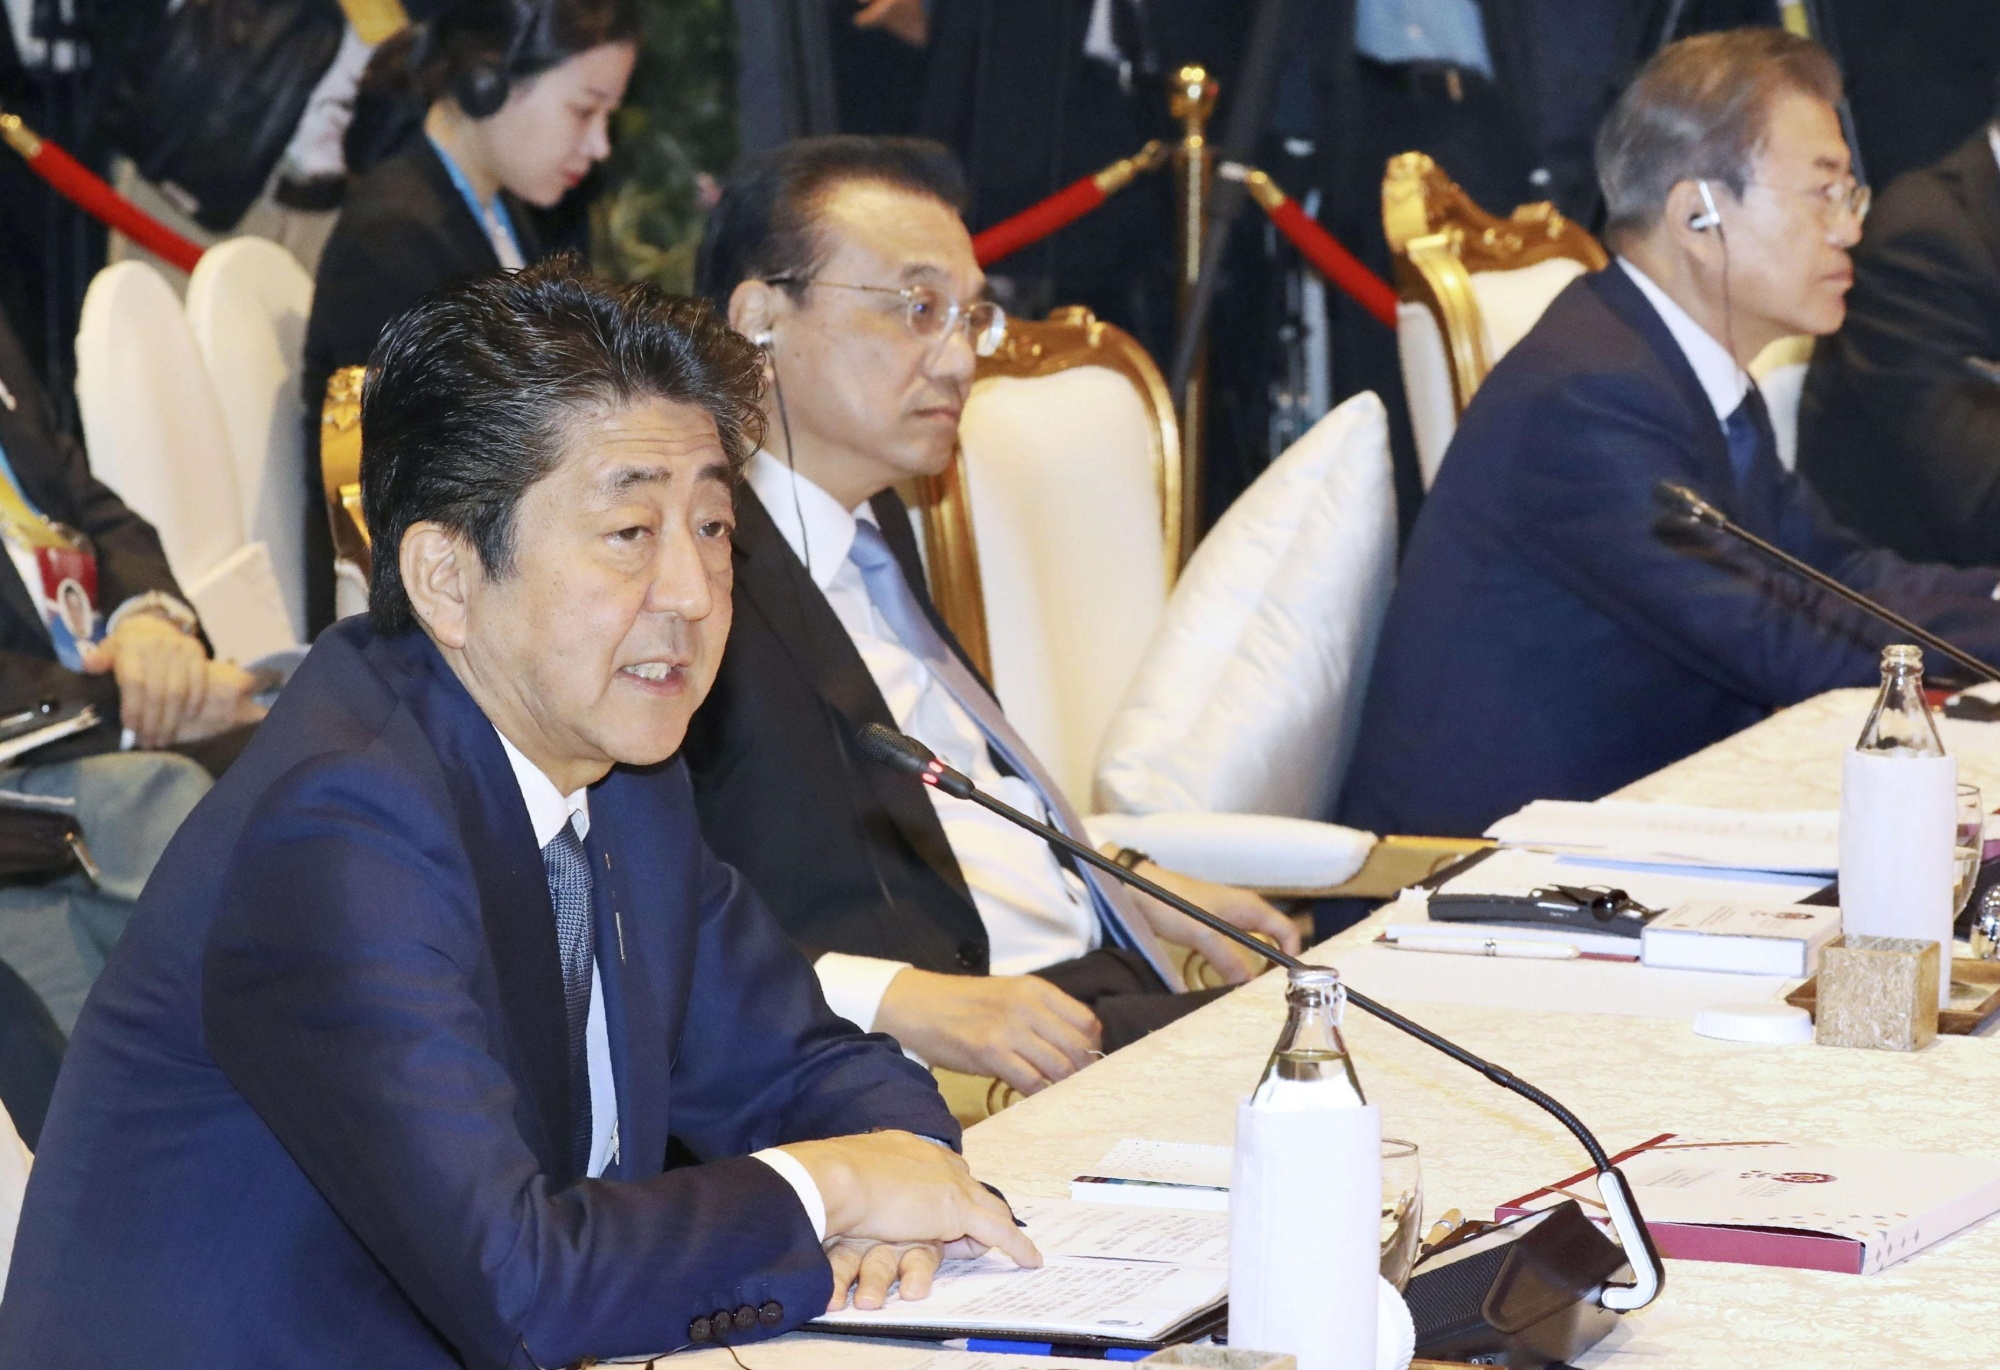 Prime Minister Shinzo Abe (left) attends a meeting of the Association of Southeast Asian Nations leaders plus Japan, China and South Korea in Bangkok on Monday along with Chinese Premier Li Keqiang (center) and South Korean President Moon Jae-in (right). | POOL / VIA KYODO